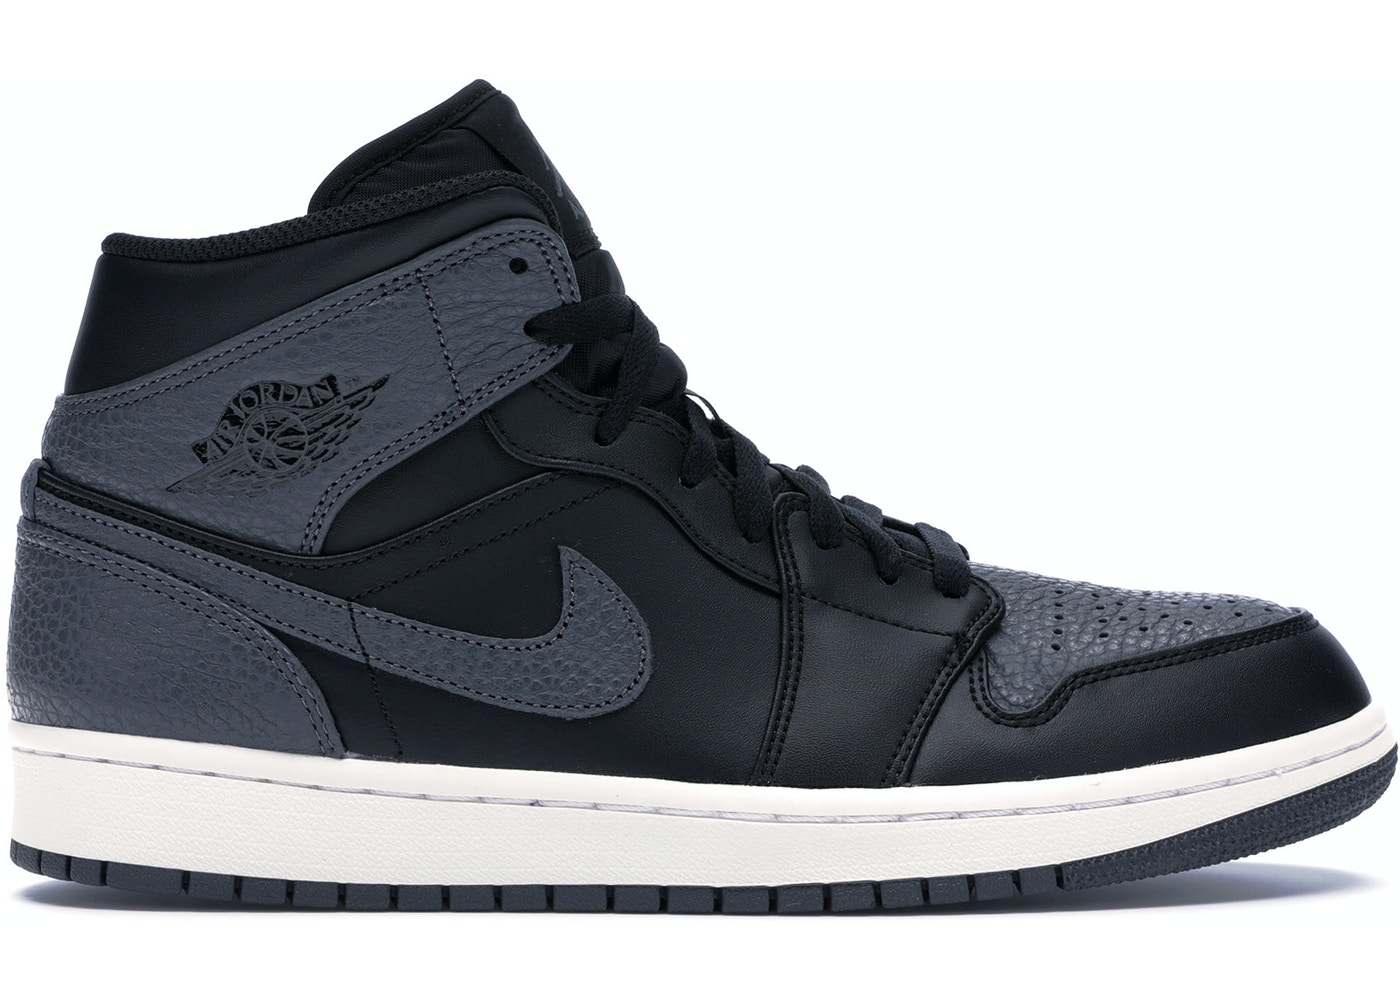 61d302e334a Jordan 1 Retro Mid Black Dark Grey - 554724-041